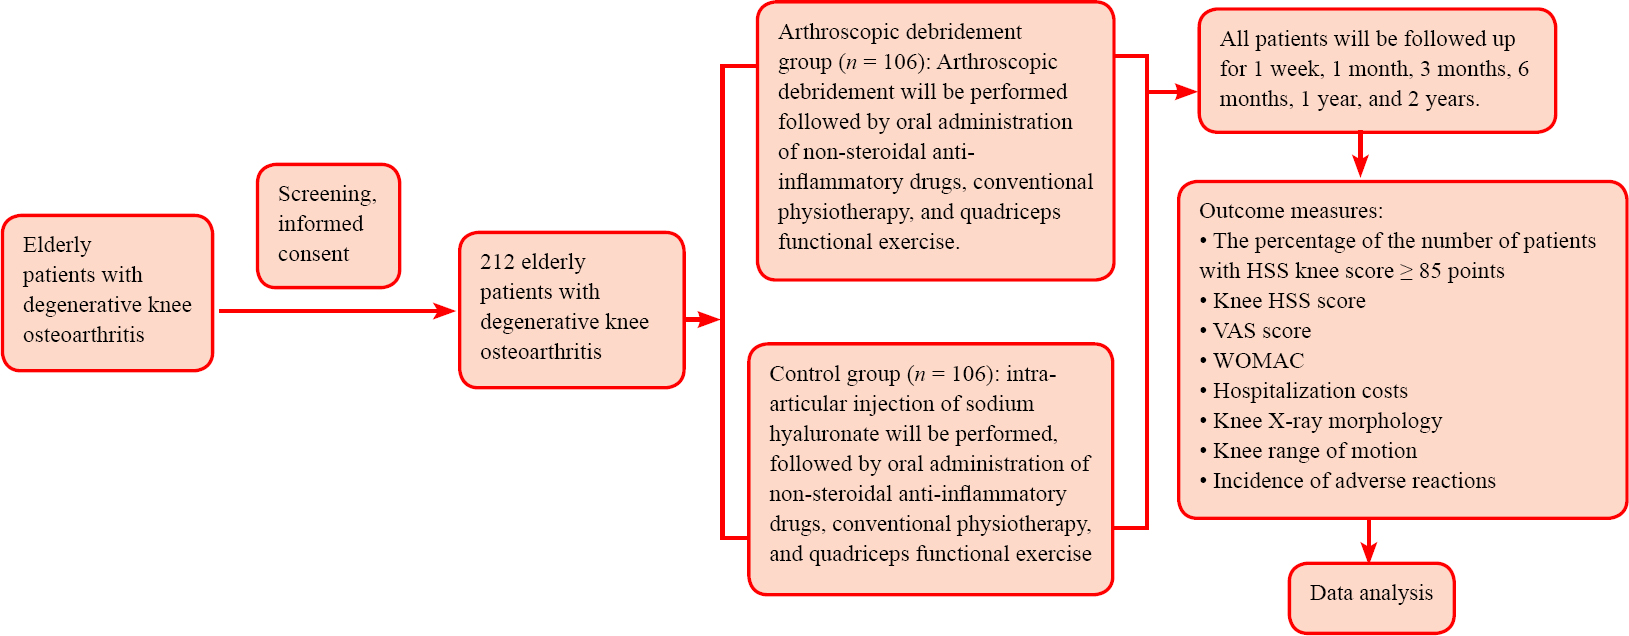 Effectiveness and safety of arthroscopic debridement for treatment